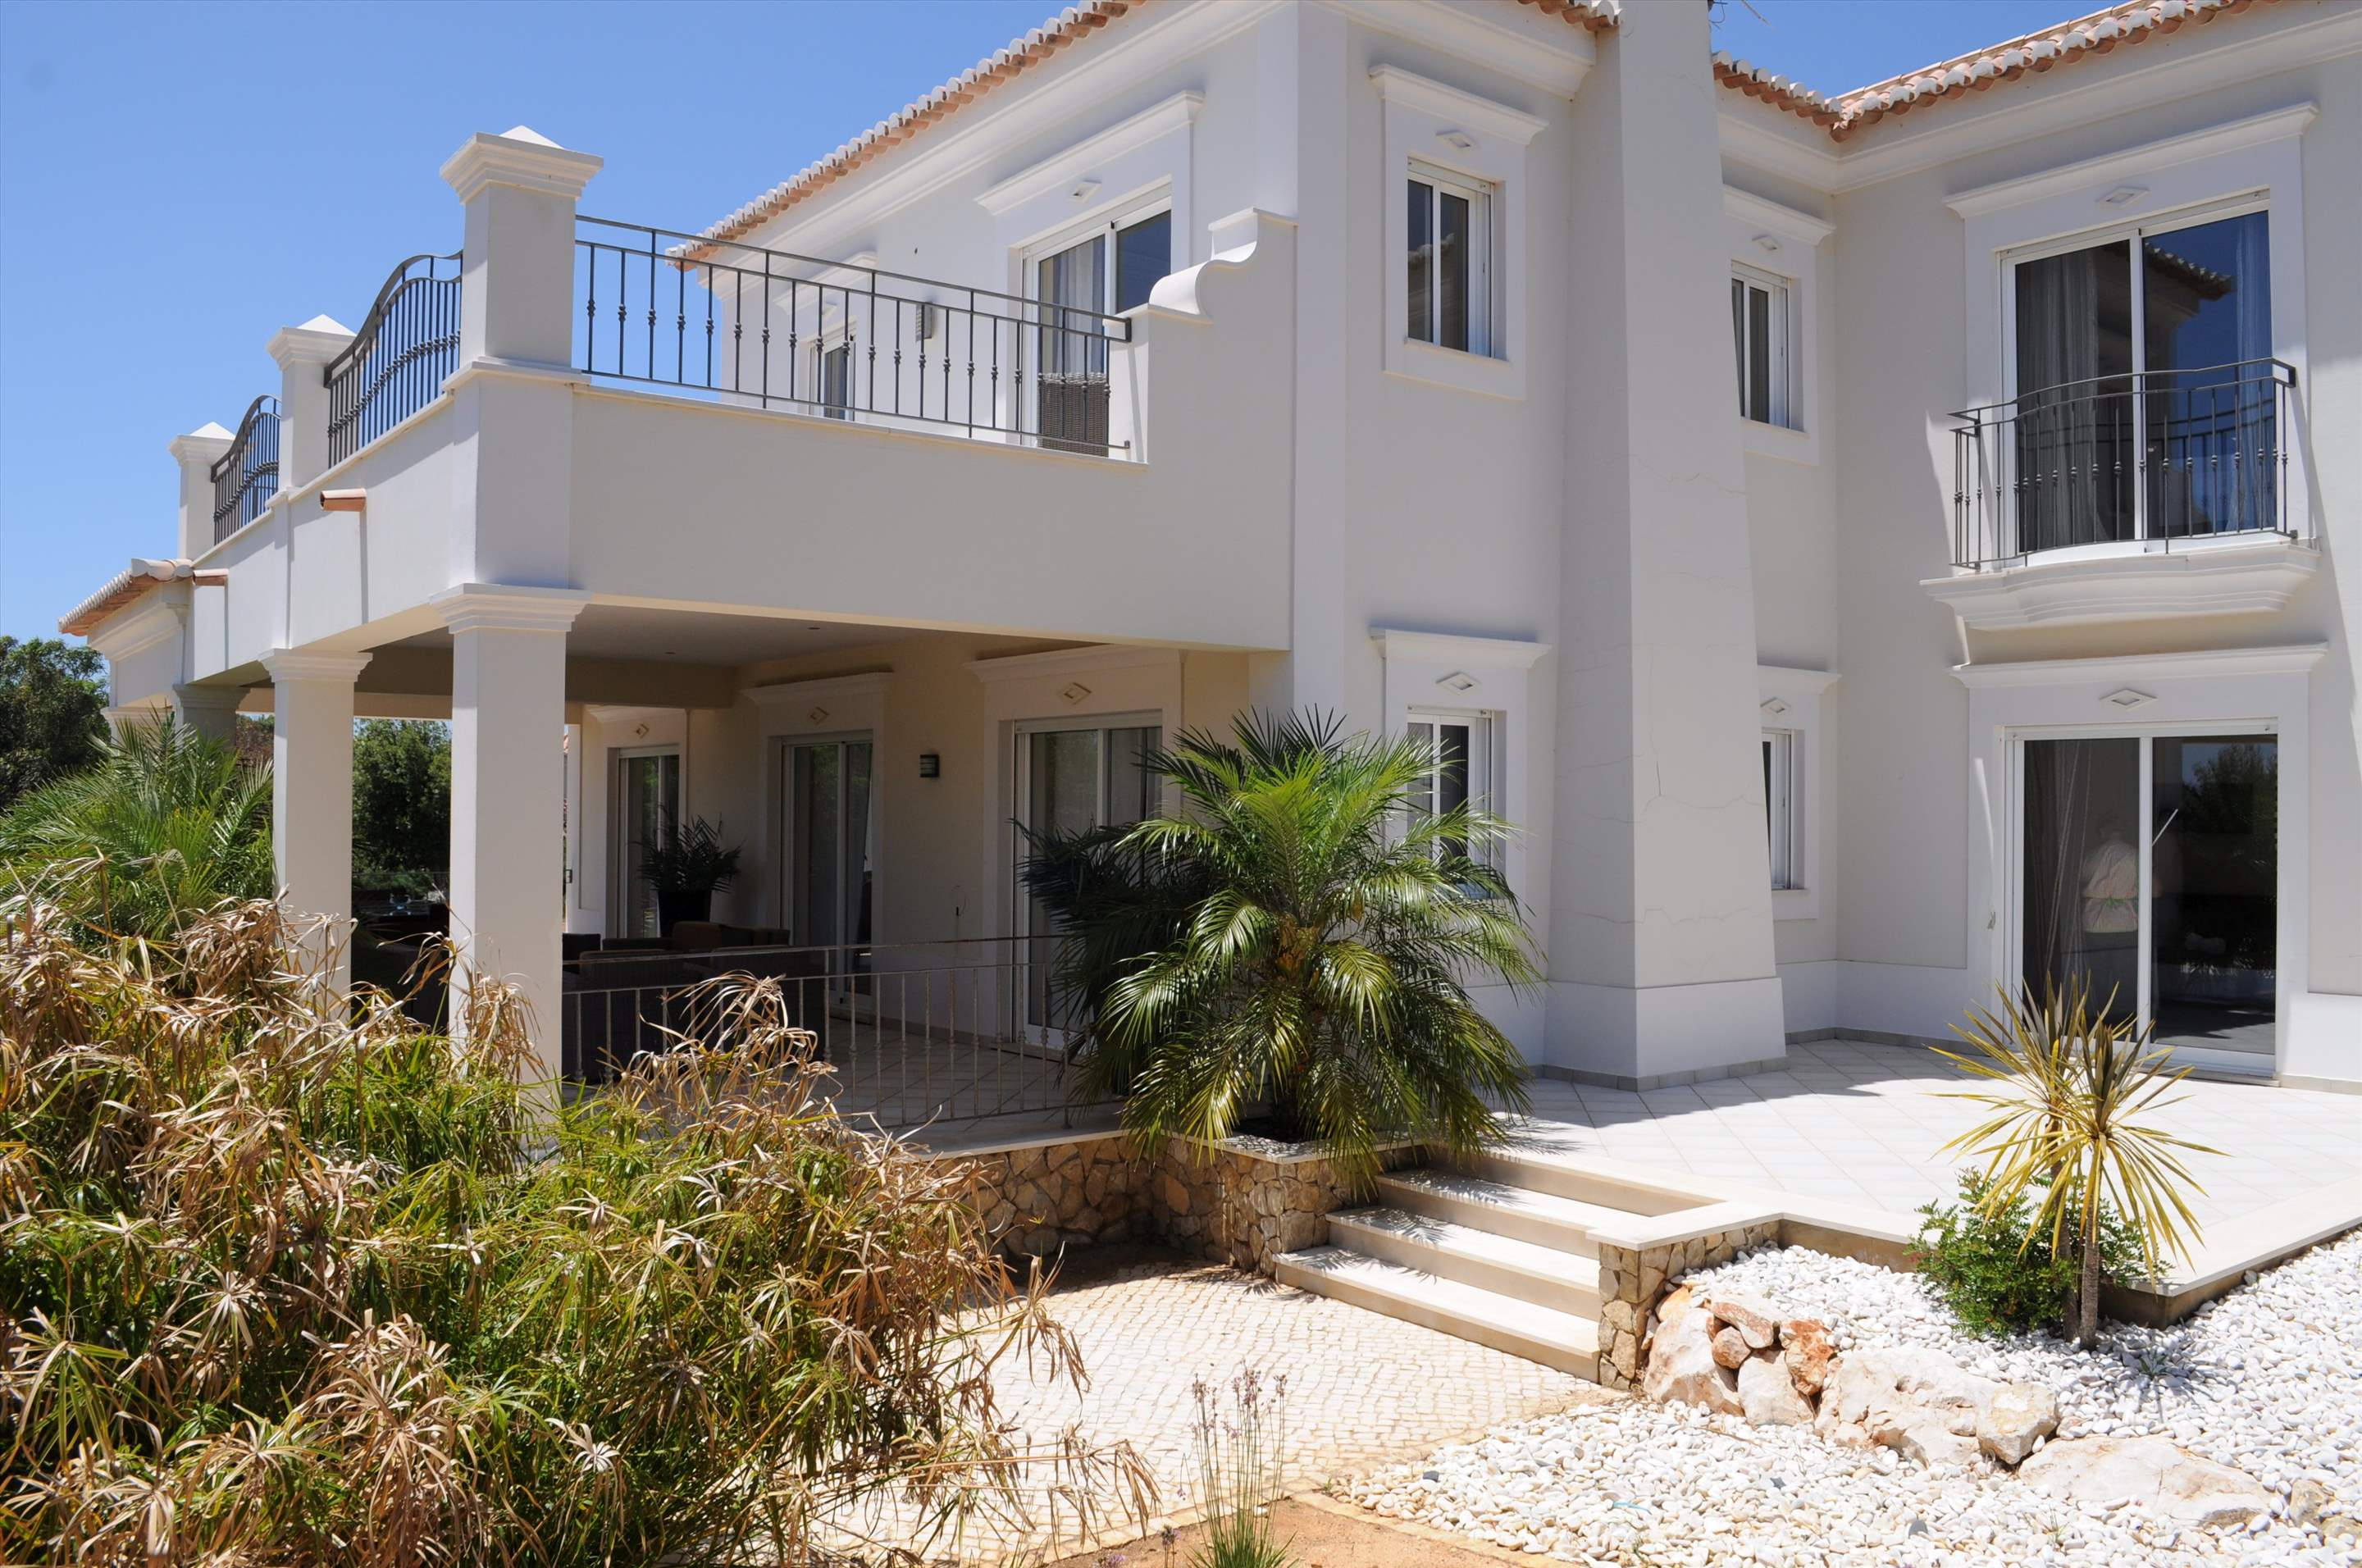 Martinhal Luxury Villa No.18, 5 bedroom villa in Martinhal Sagres, Algarve Photo #12